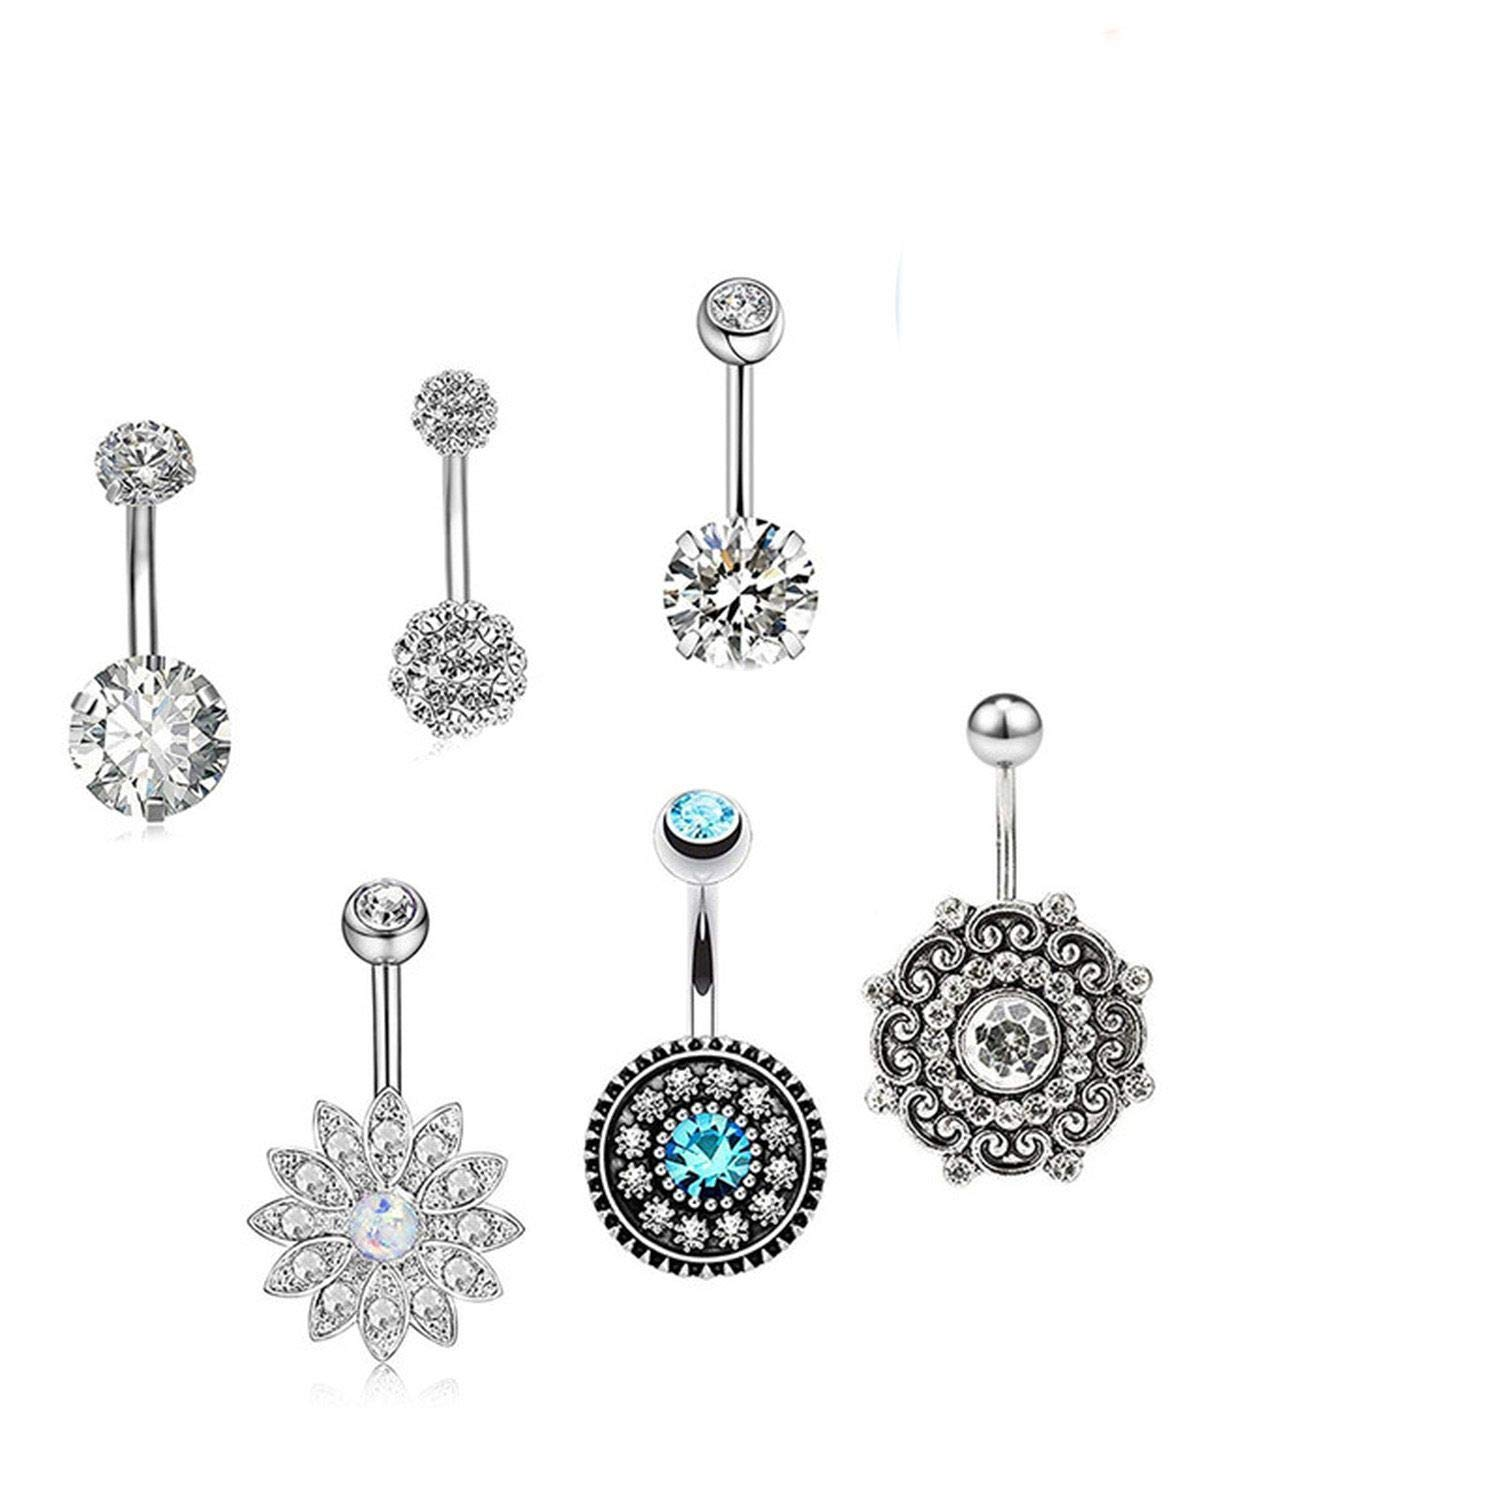 jiajiastores 6 Pcs//Set Elegant Body Piercing Jewelry Crystal Flower Navel Belly Button Ring Chic Stainless Steel Navel Ring